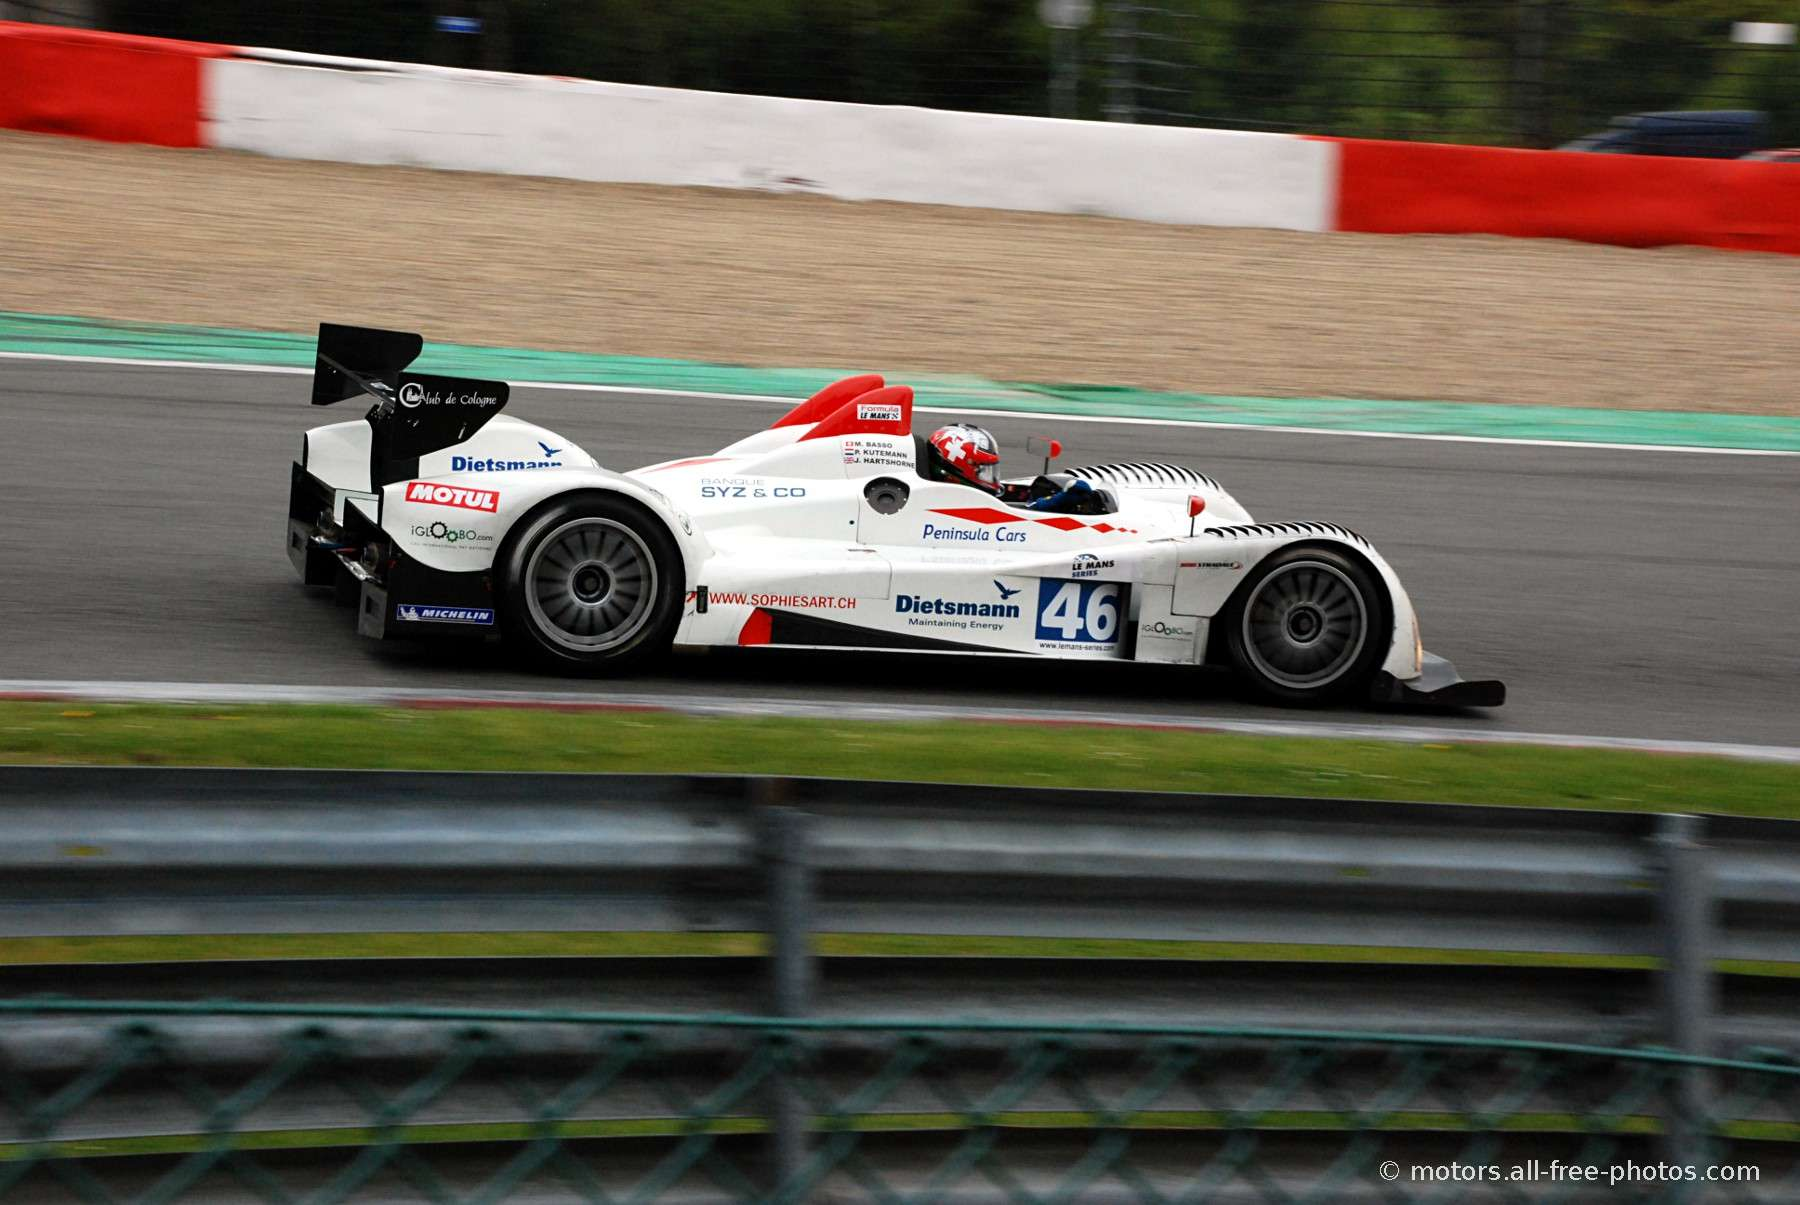 Photo formula le mans oreca 10